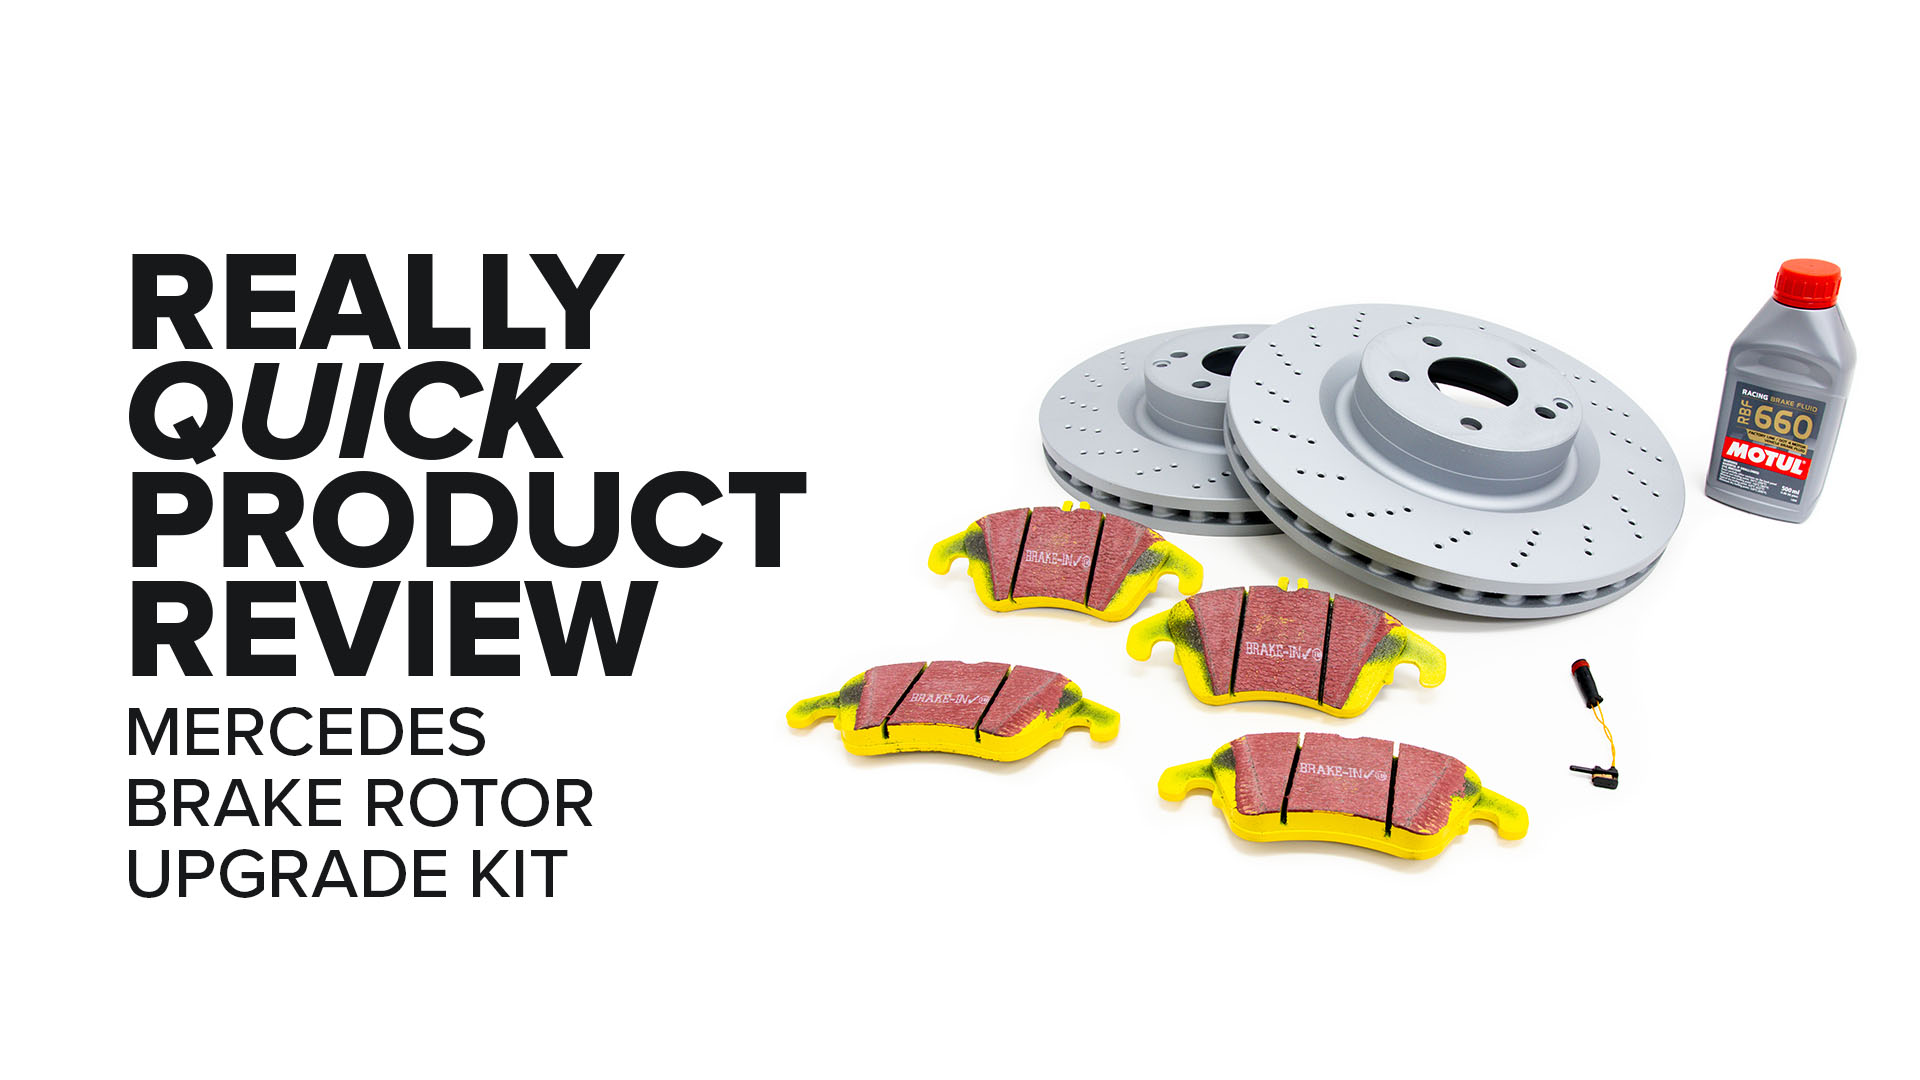 Mercedes-Benz W204 (C250, C300, & E350) Brake Rotor Upgrade Kit - Features And Product Review